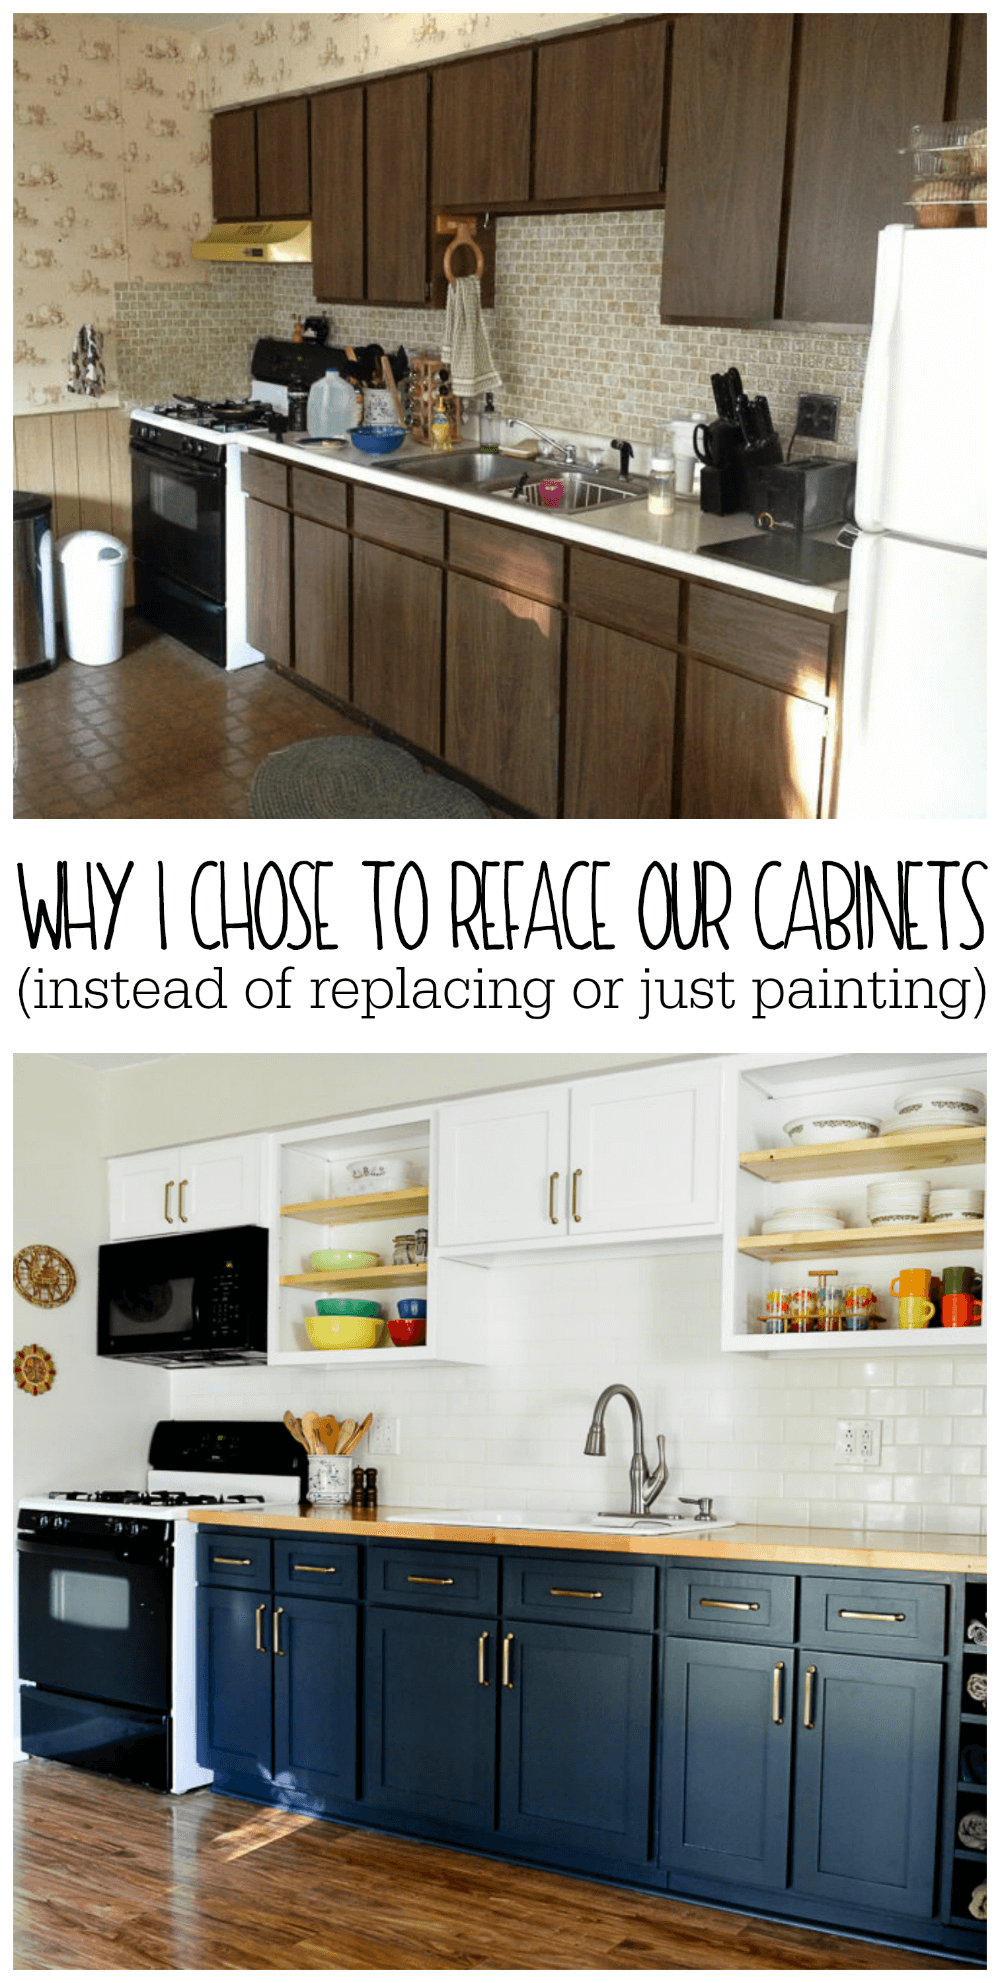 Replacing Cabinet Doors Instead Of Buying New Cabinets Or Just